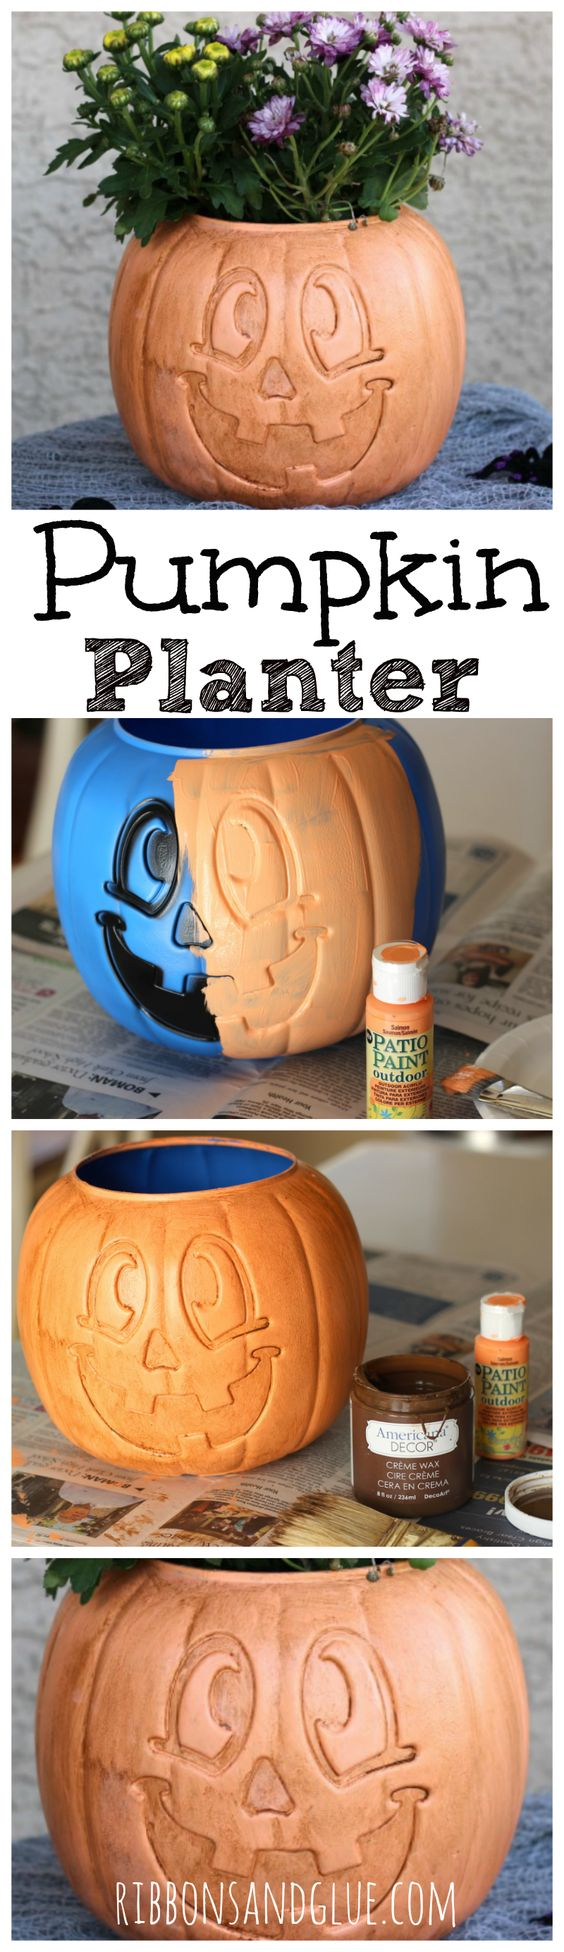 DIY Pumpkin Planter From A Painted Plastic Treat Bucket.